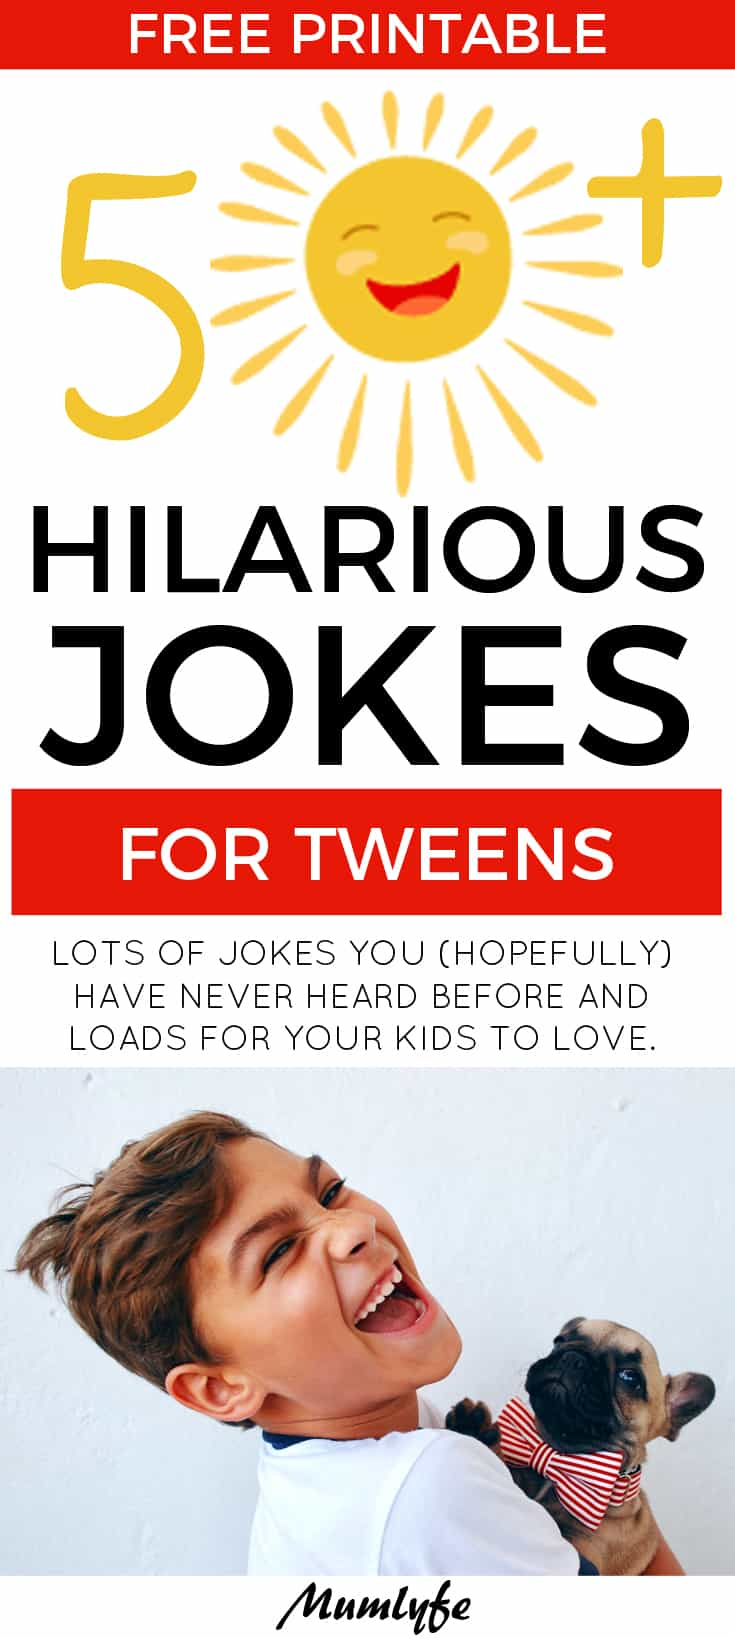 50+ hilarious jokes for tweens - fun and clever jokes to make tweens laugh